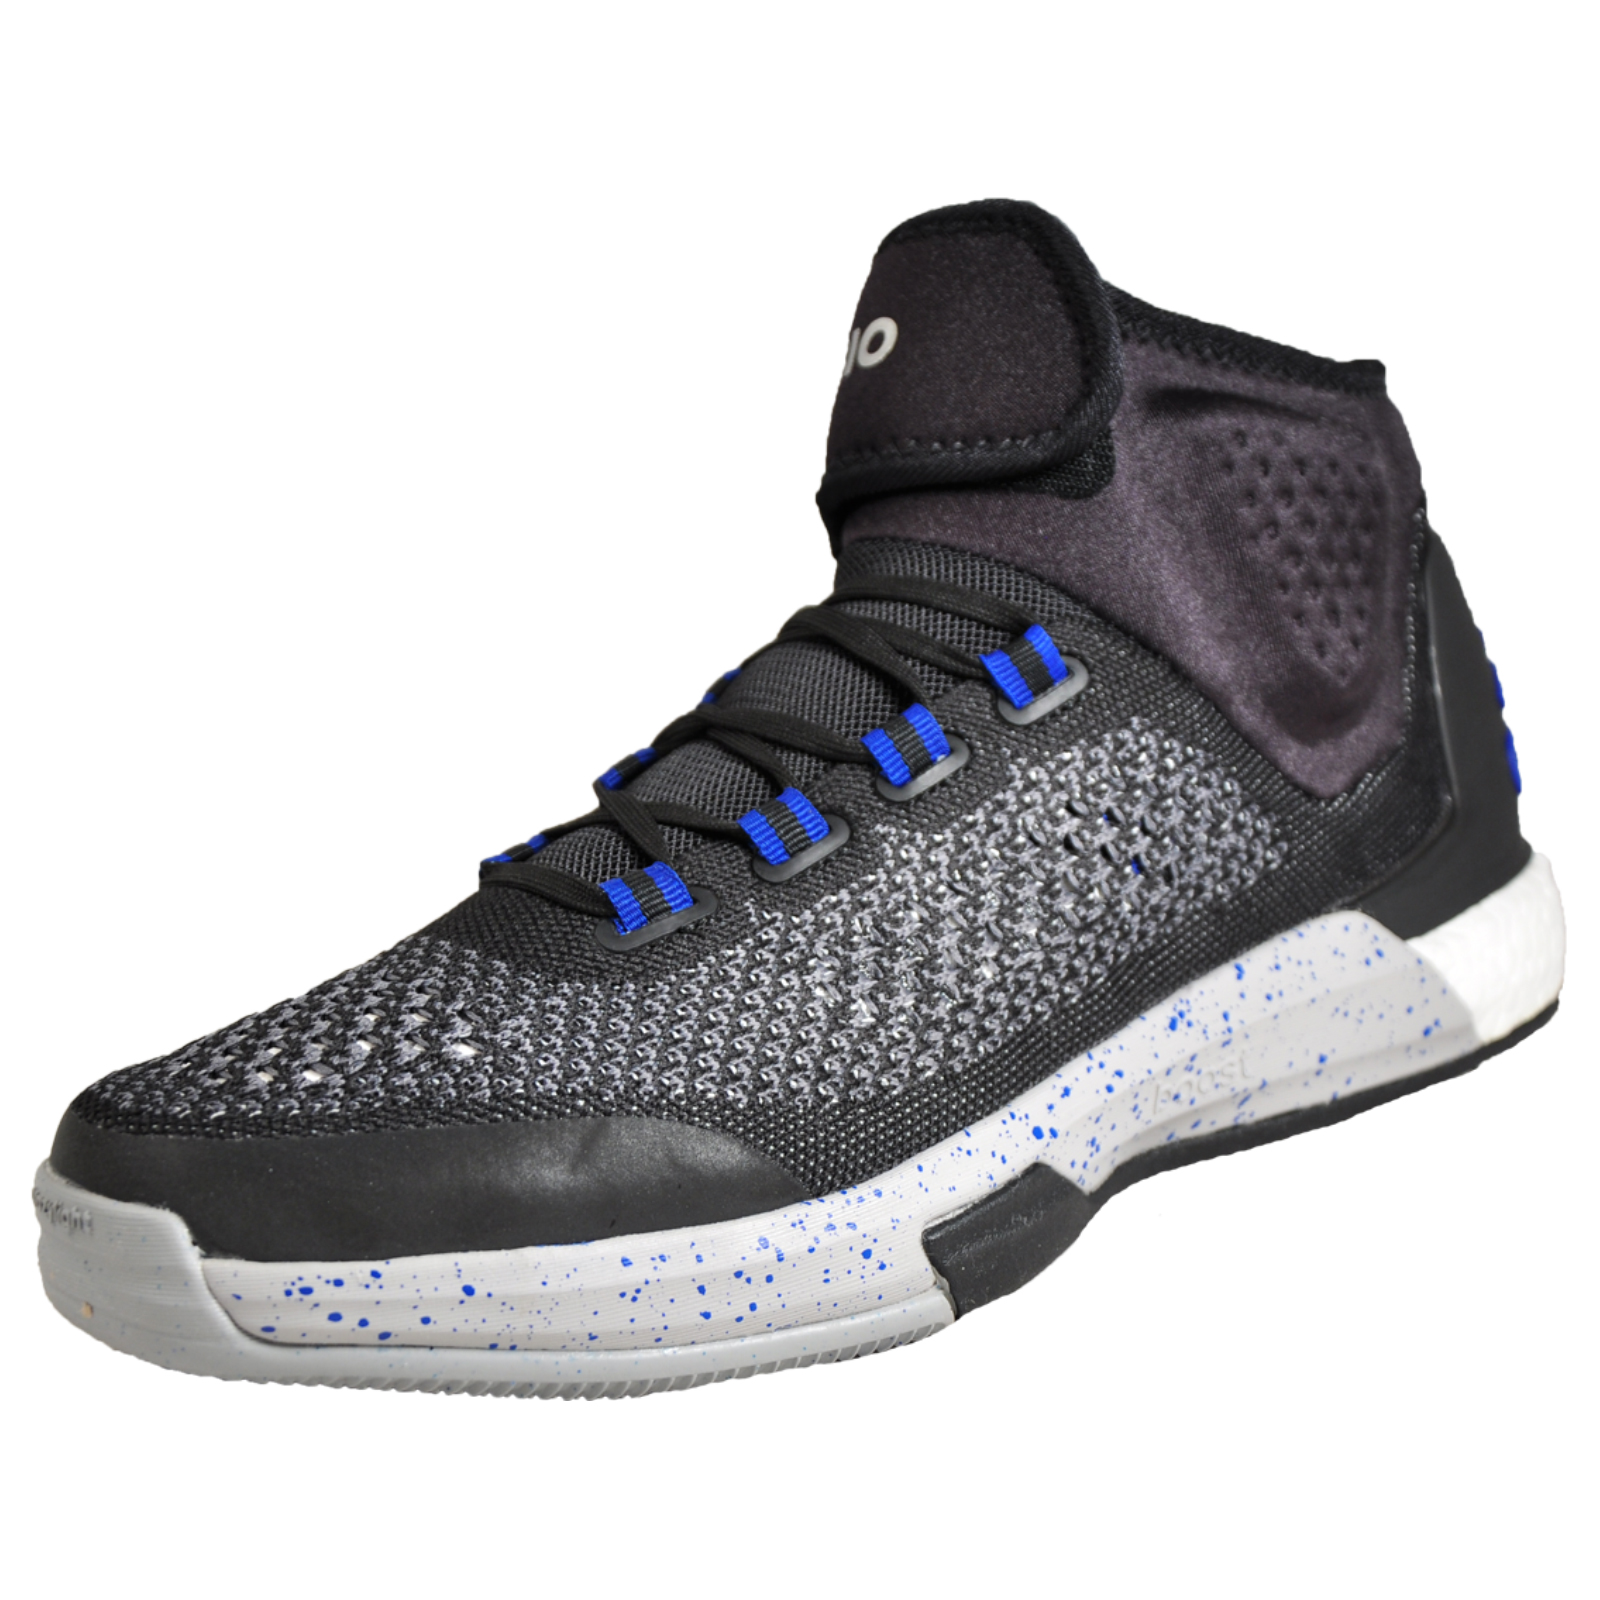 4448bfa442fa6 Details about Adidas Crazylight Boost Primeknit Fitness Basketball Shoes  Boot Trainers Black